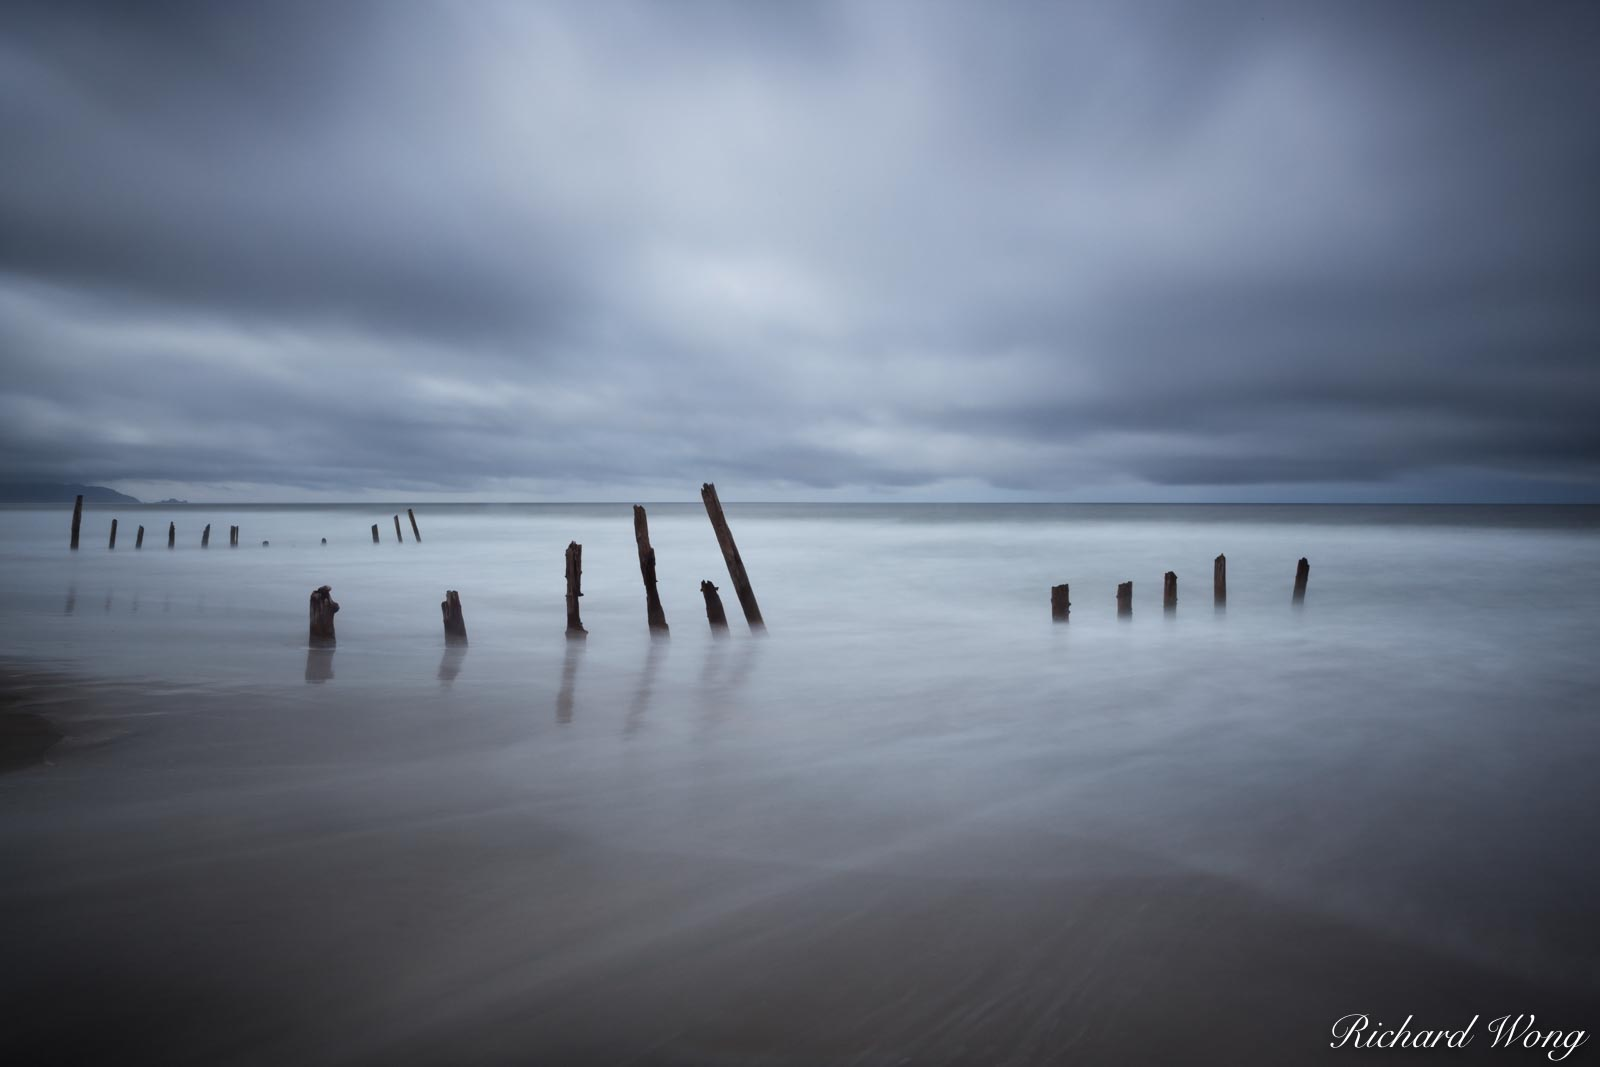 Fort Funston Beach Pilings in Rain Storm, San Francisco, California, photo, photo